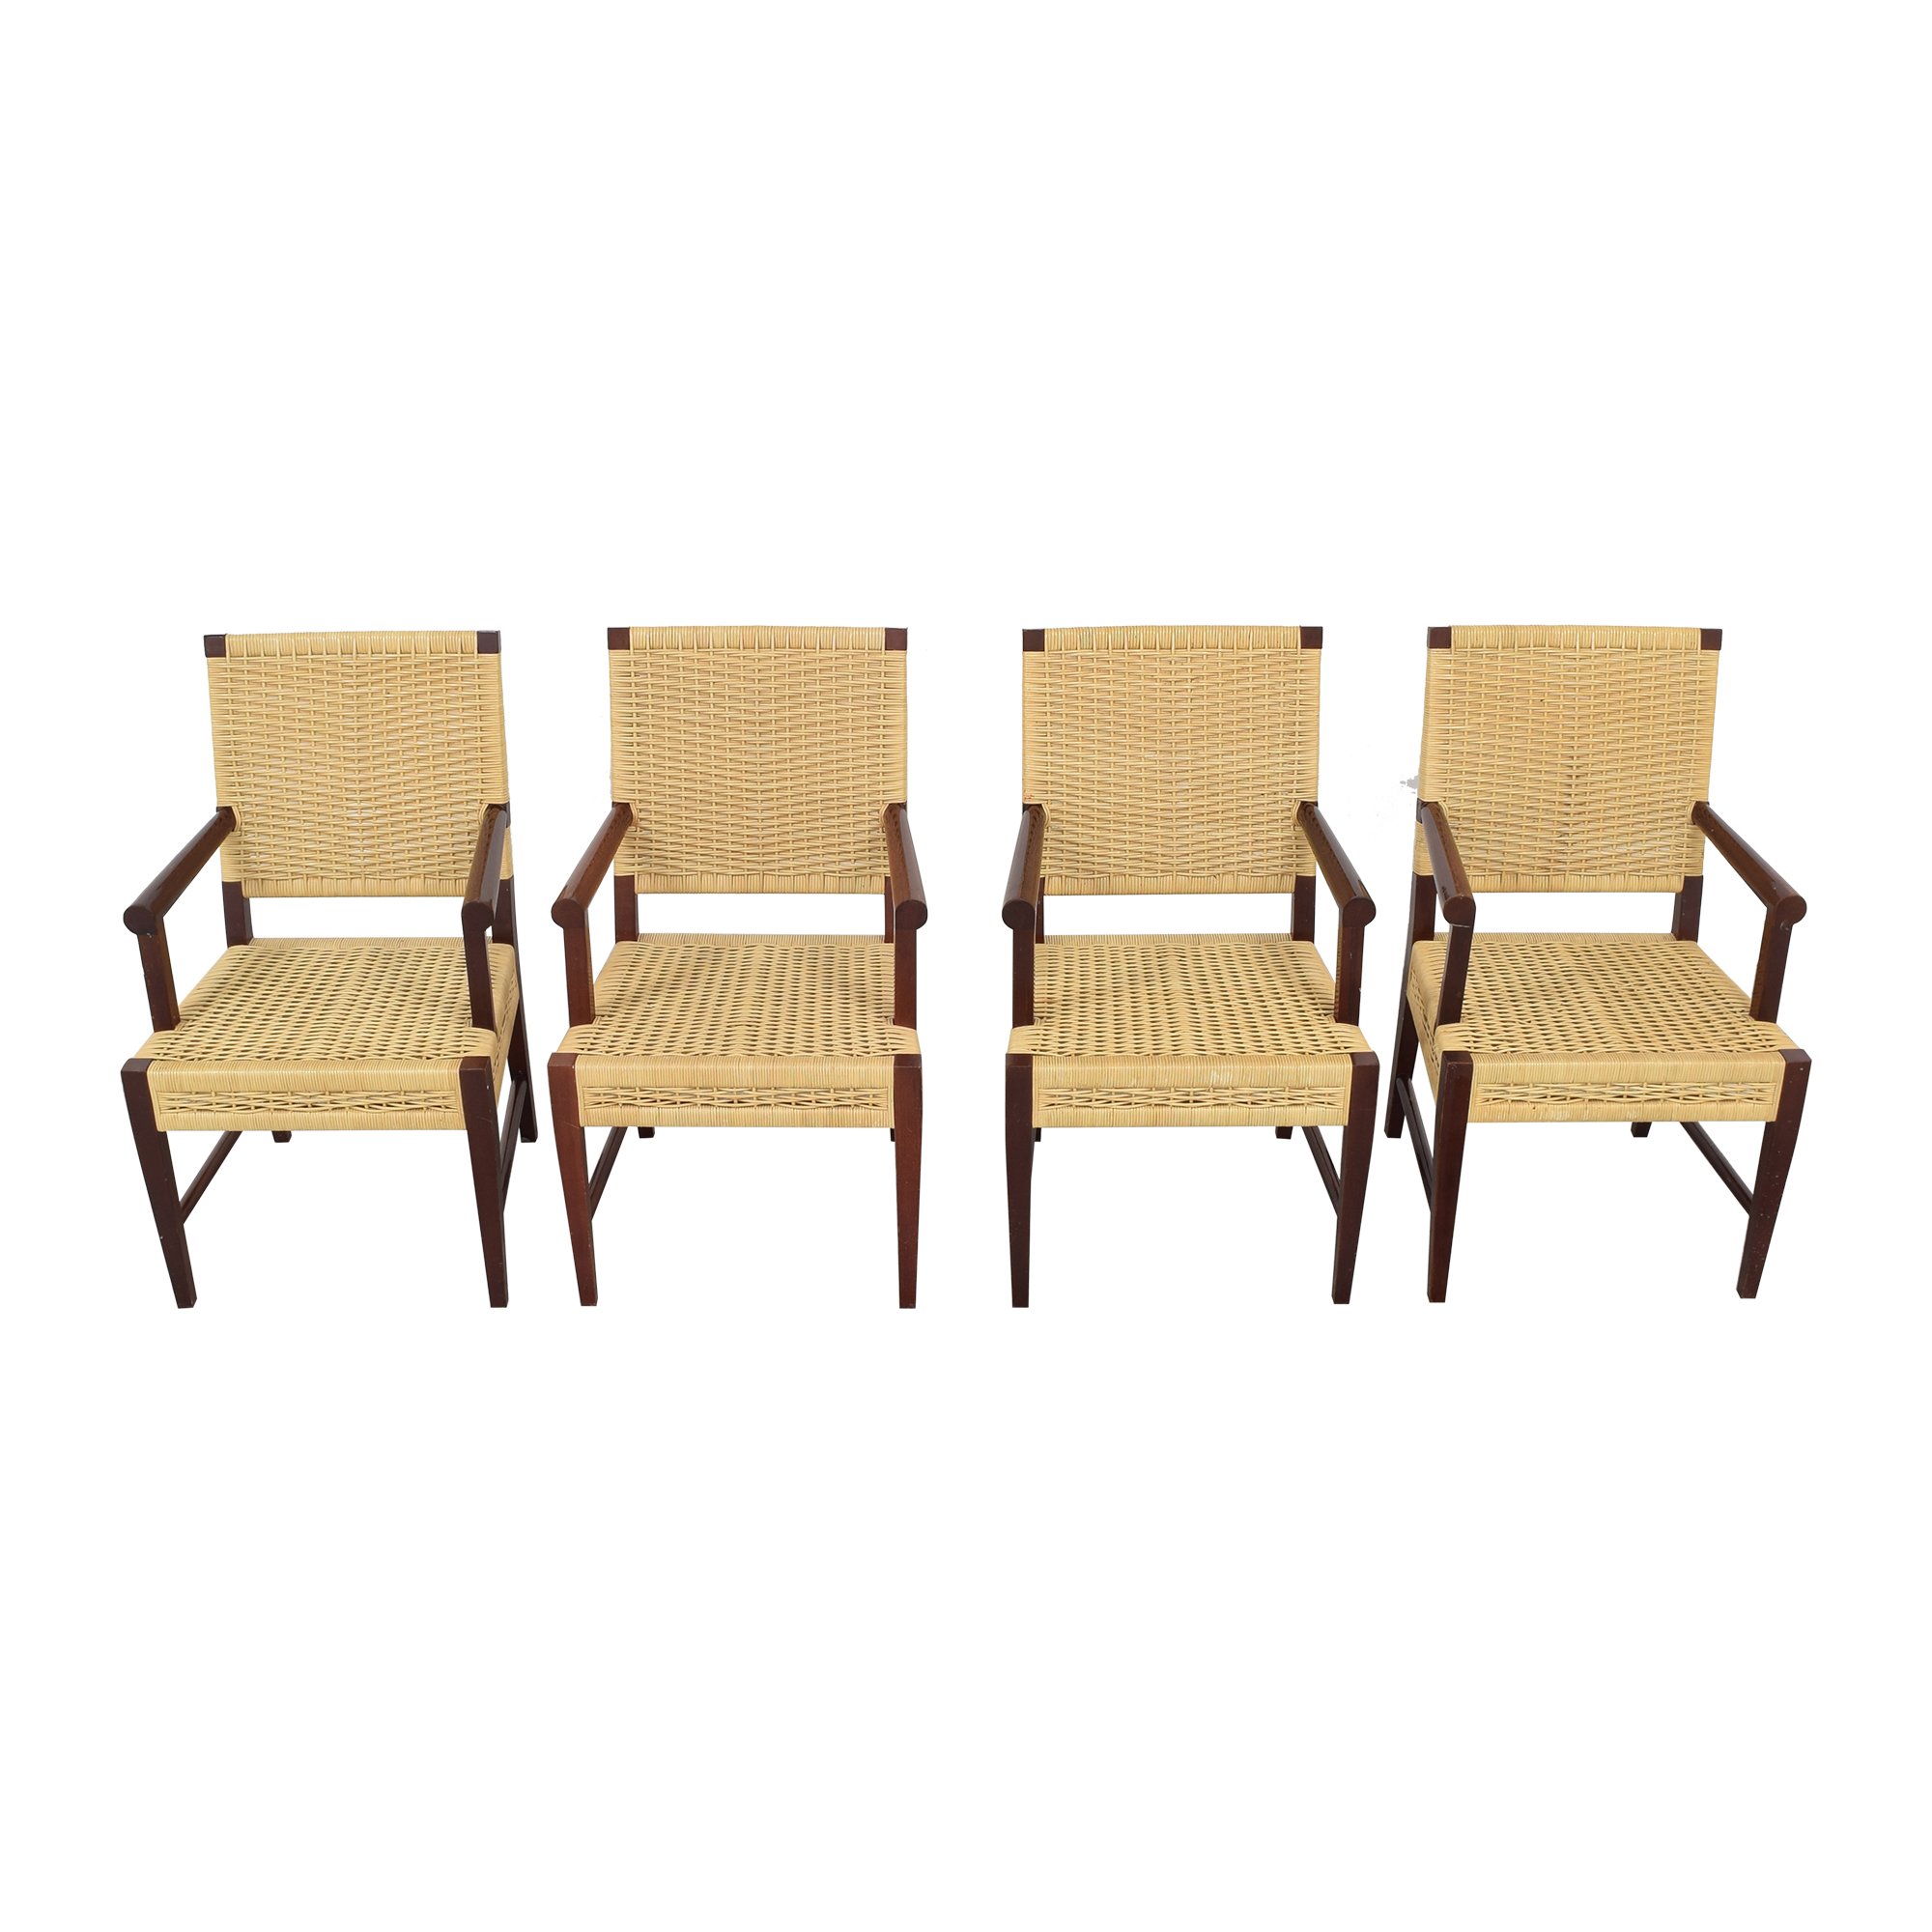 Donghia Dining Chairs in Merbau Wood with Raffia Weaving Donghia